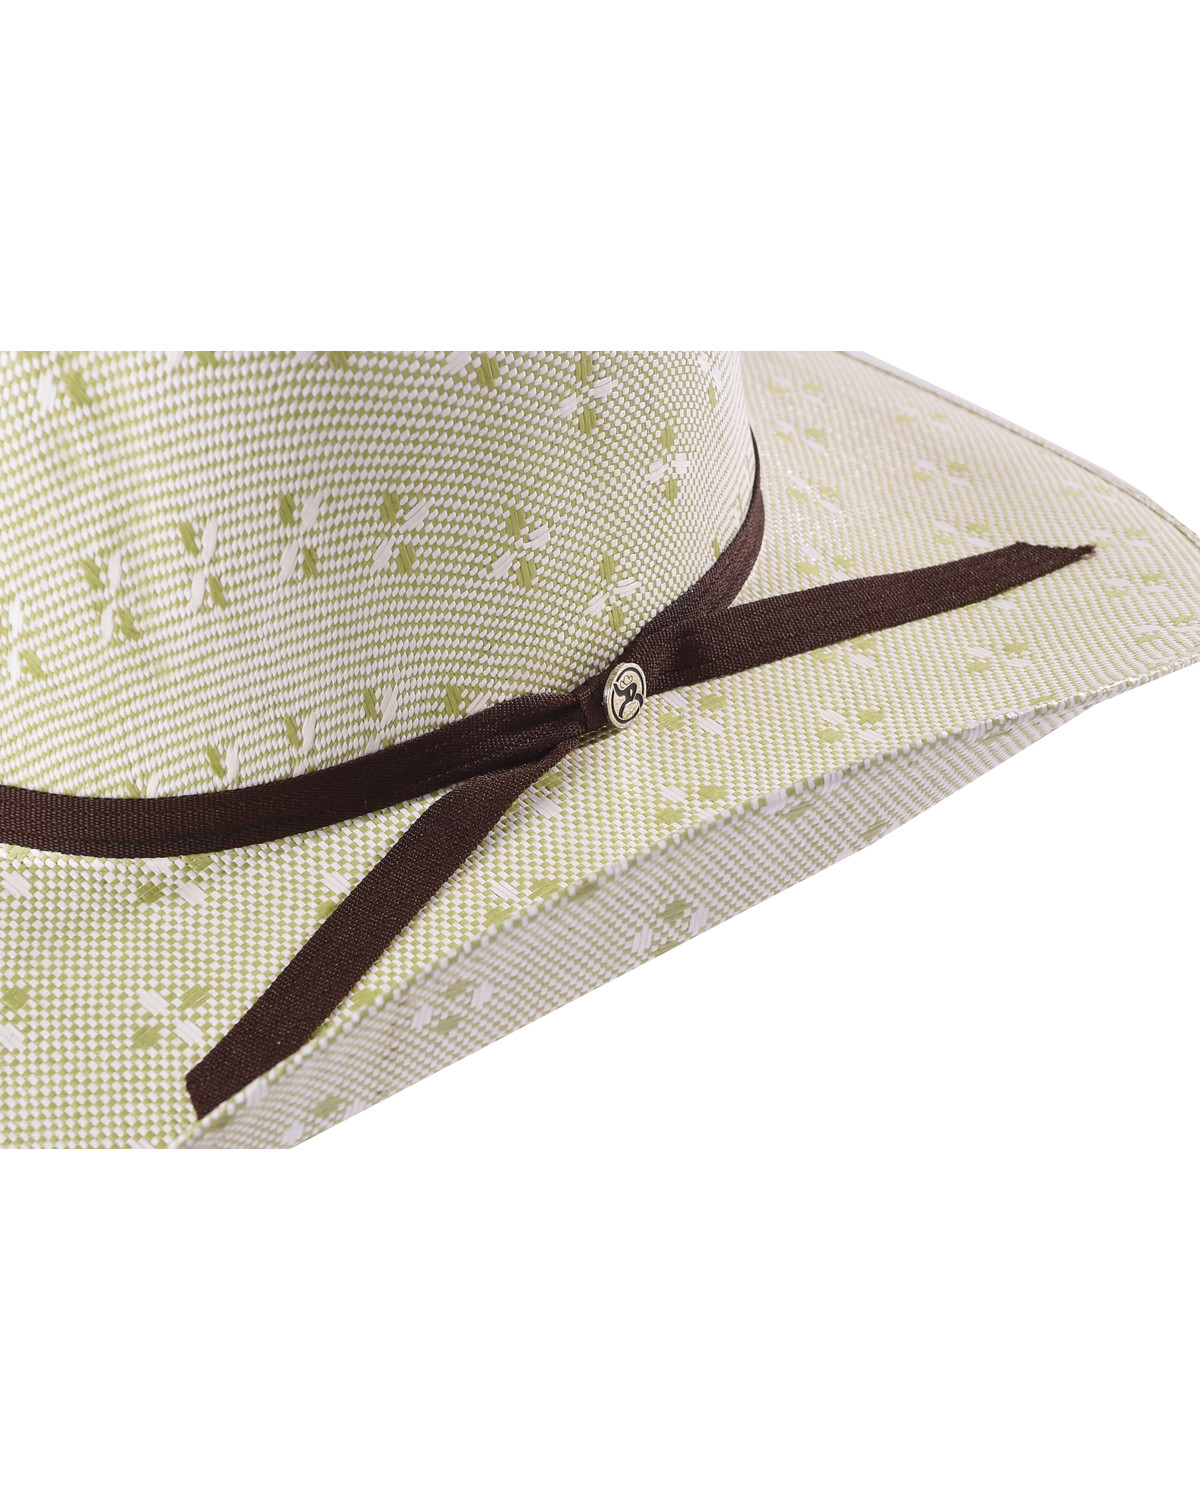 2254a90643a24 Hooey by Resistol Men s Natural Pecos Straw Cowboy Hat